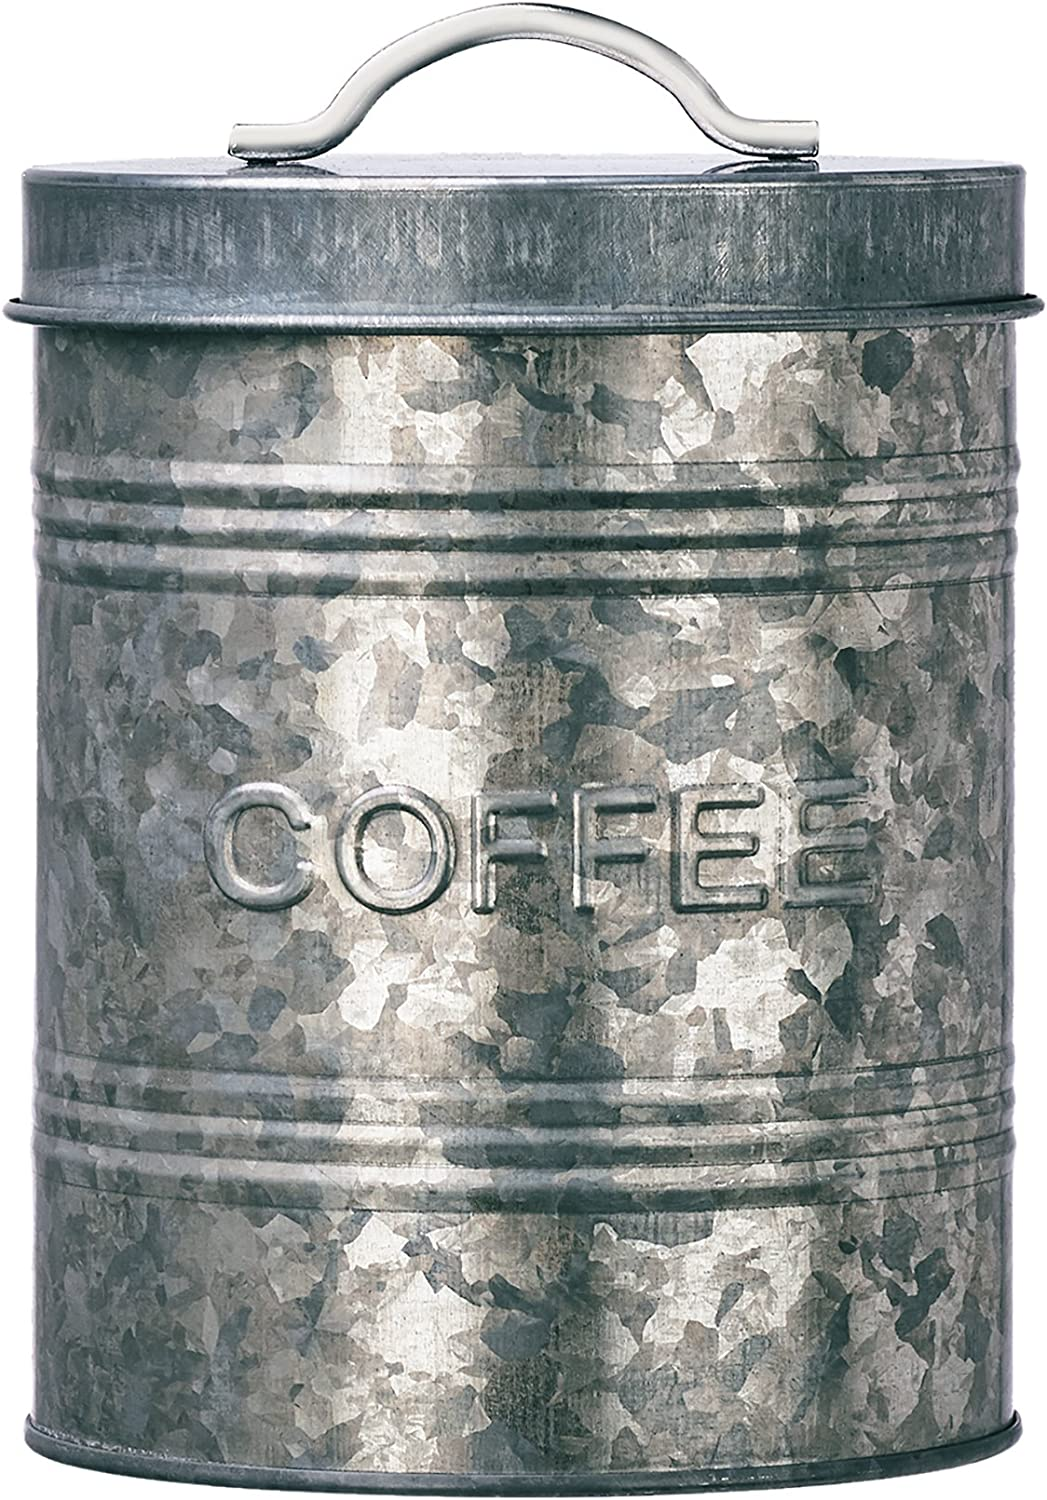 Amici Home A7CJ007R Rustic Kitchen Collection Coffee Relief Galvanized Metal Storage Canister, Food Safe, 76 Fluid Ounce Capacity